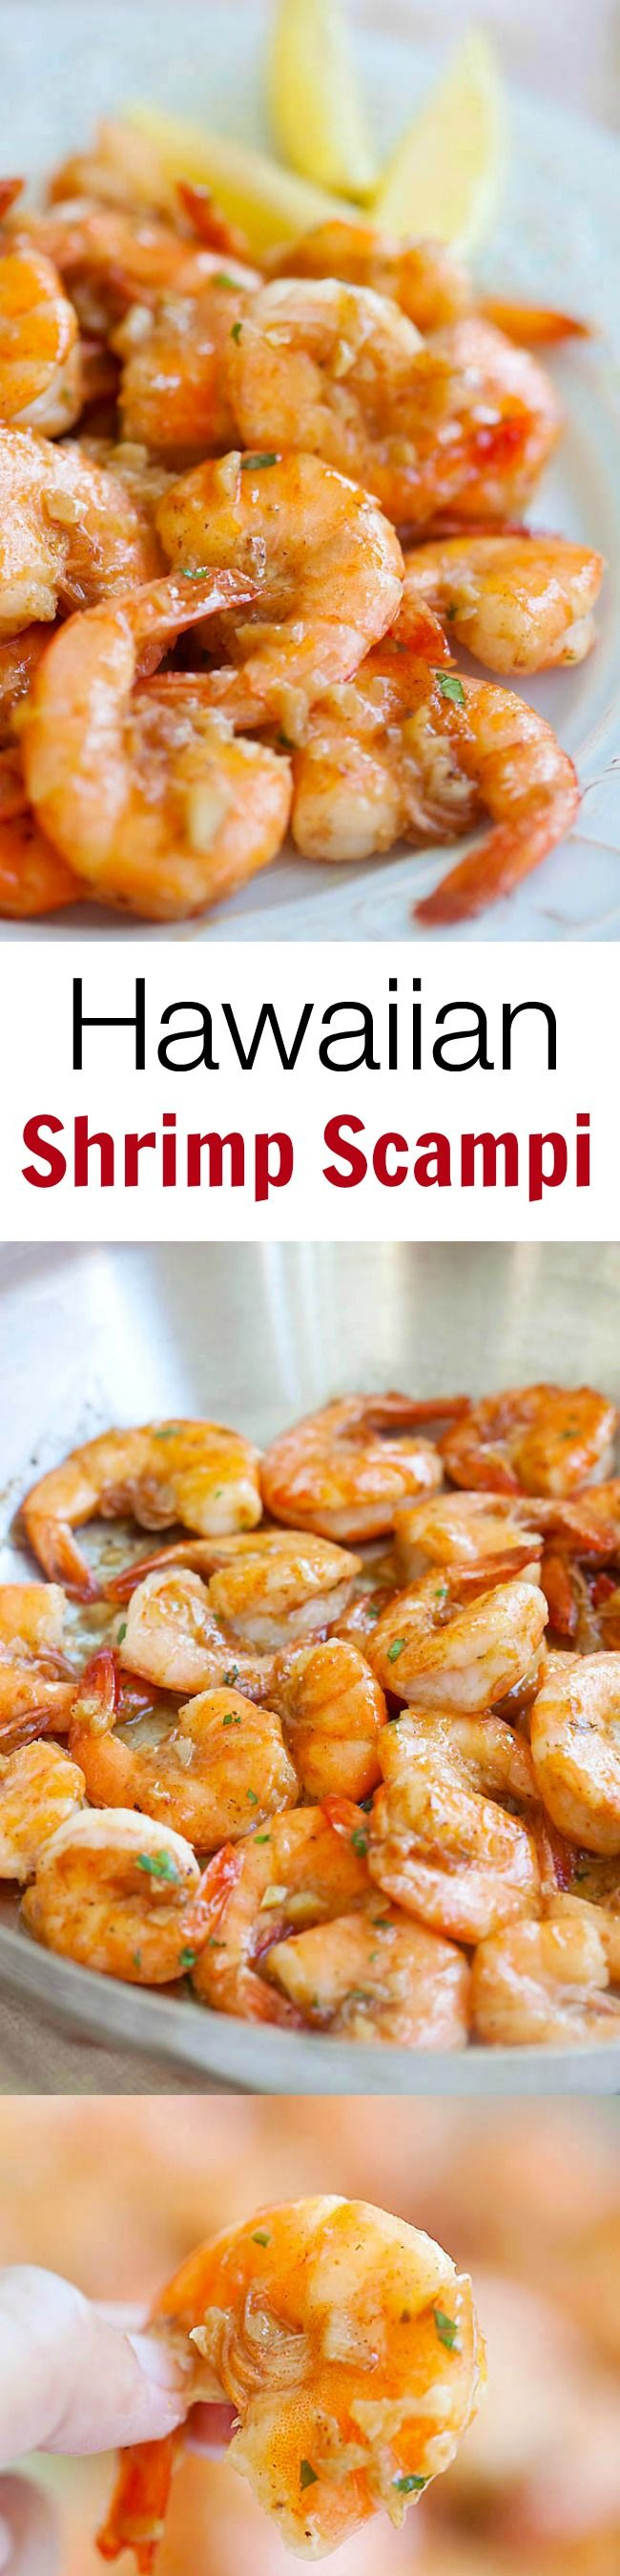 Hawaiian Shrimp Scampi - super buttery and garlicky, copycat of Giovanni's shrimp truck.  Bring Hawaii home with my super easy recipe | rasamalaysia.com